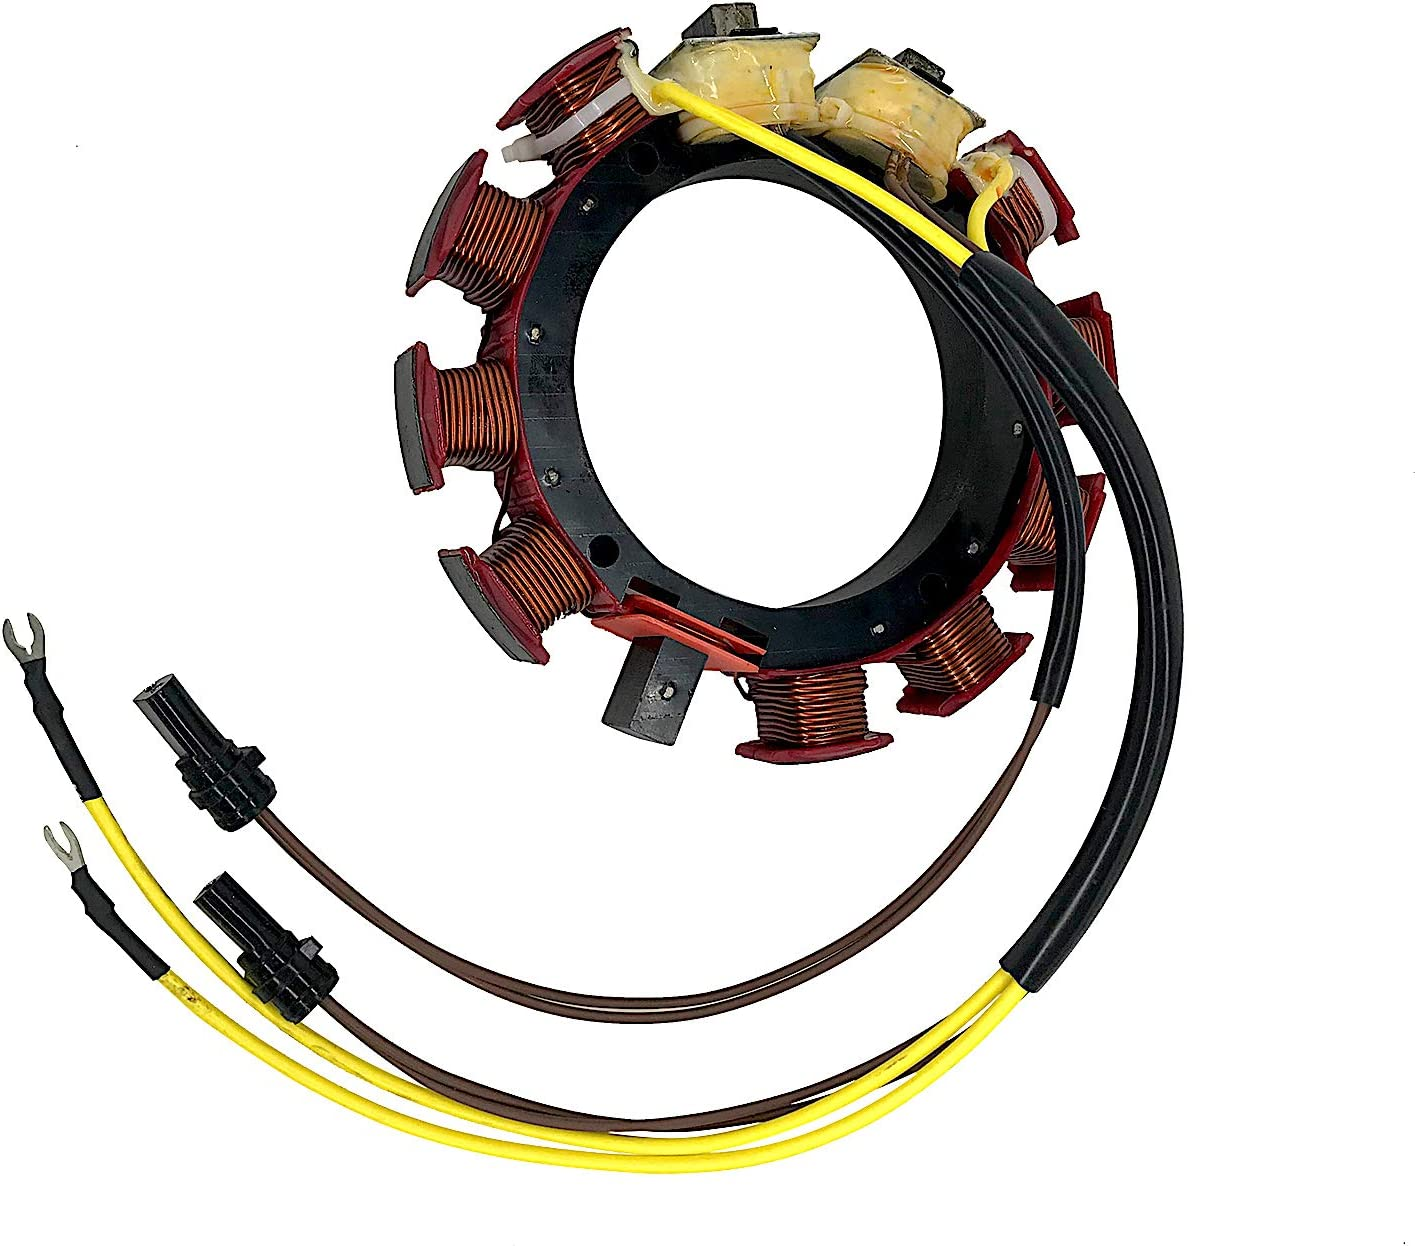 JETUNIT Outboard Stator 6Cyl 即出荷 安心の定価販売 35Amp For Johnson Evinrude 150-175H